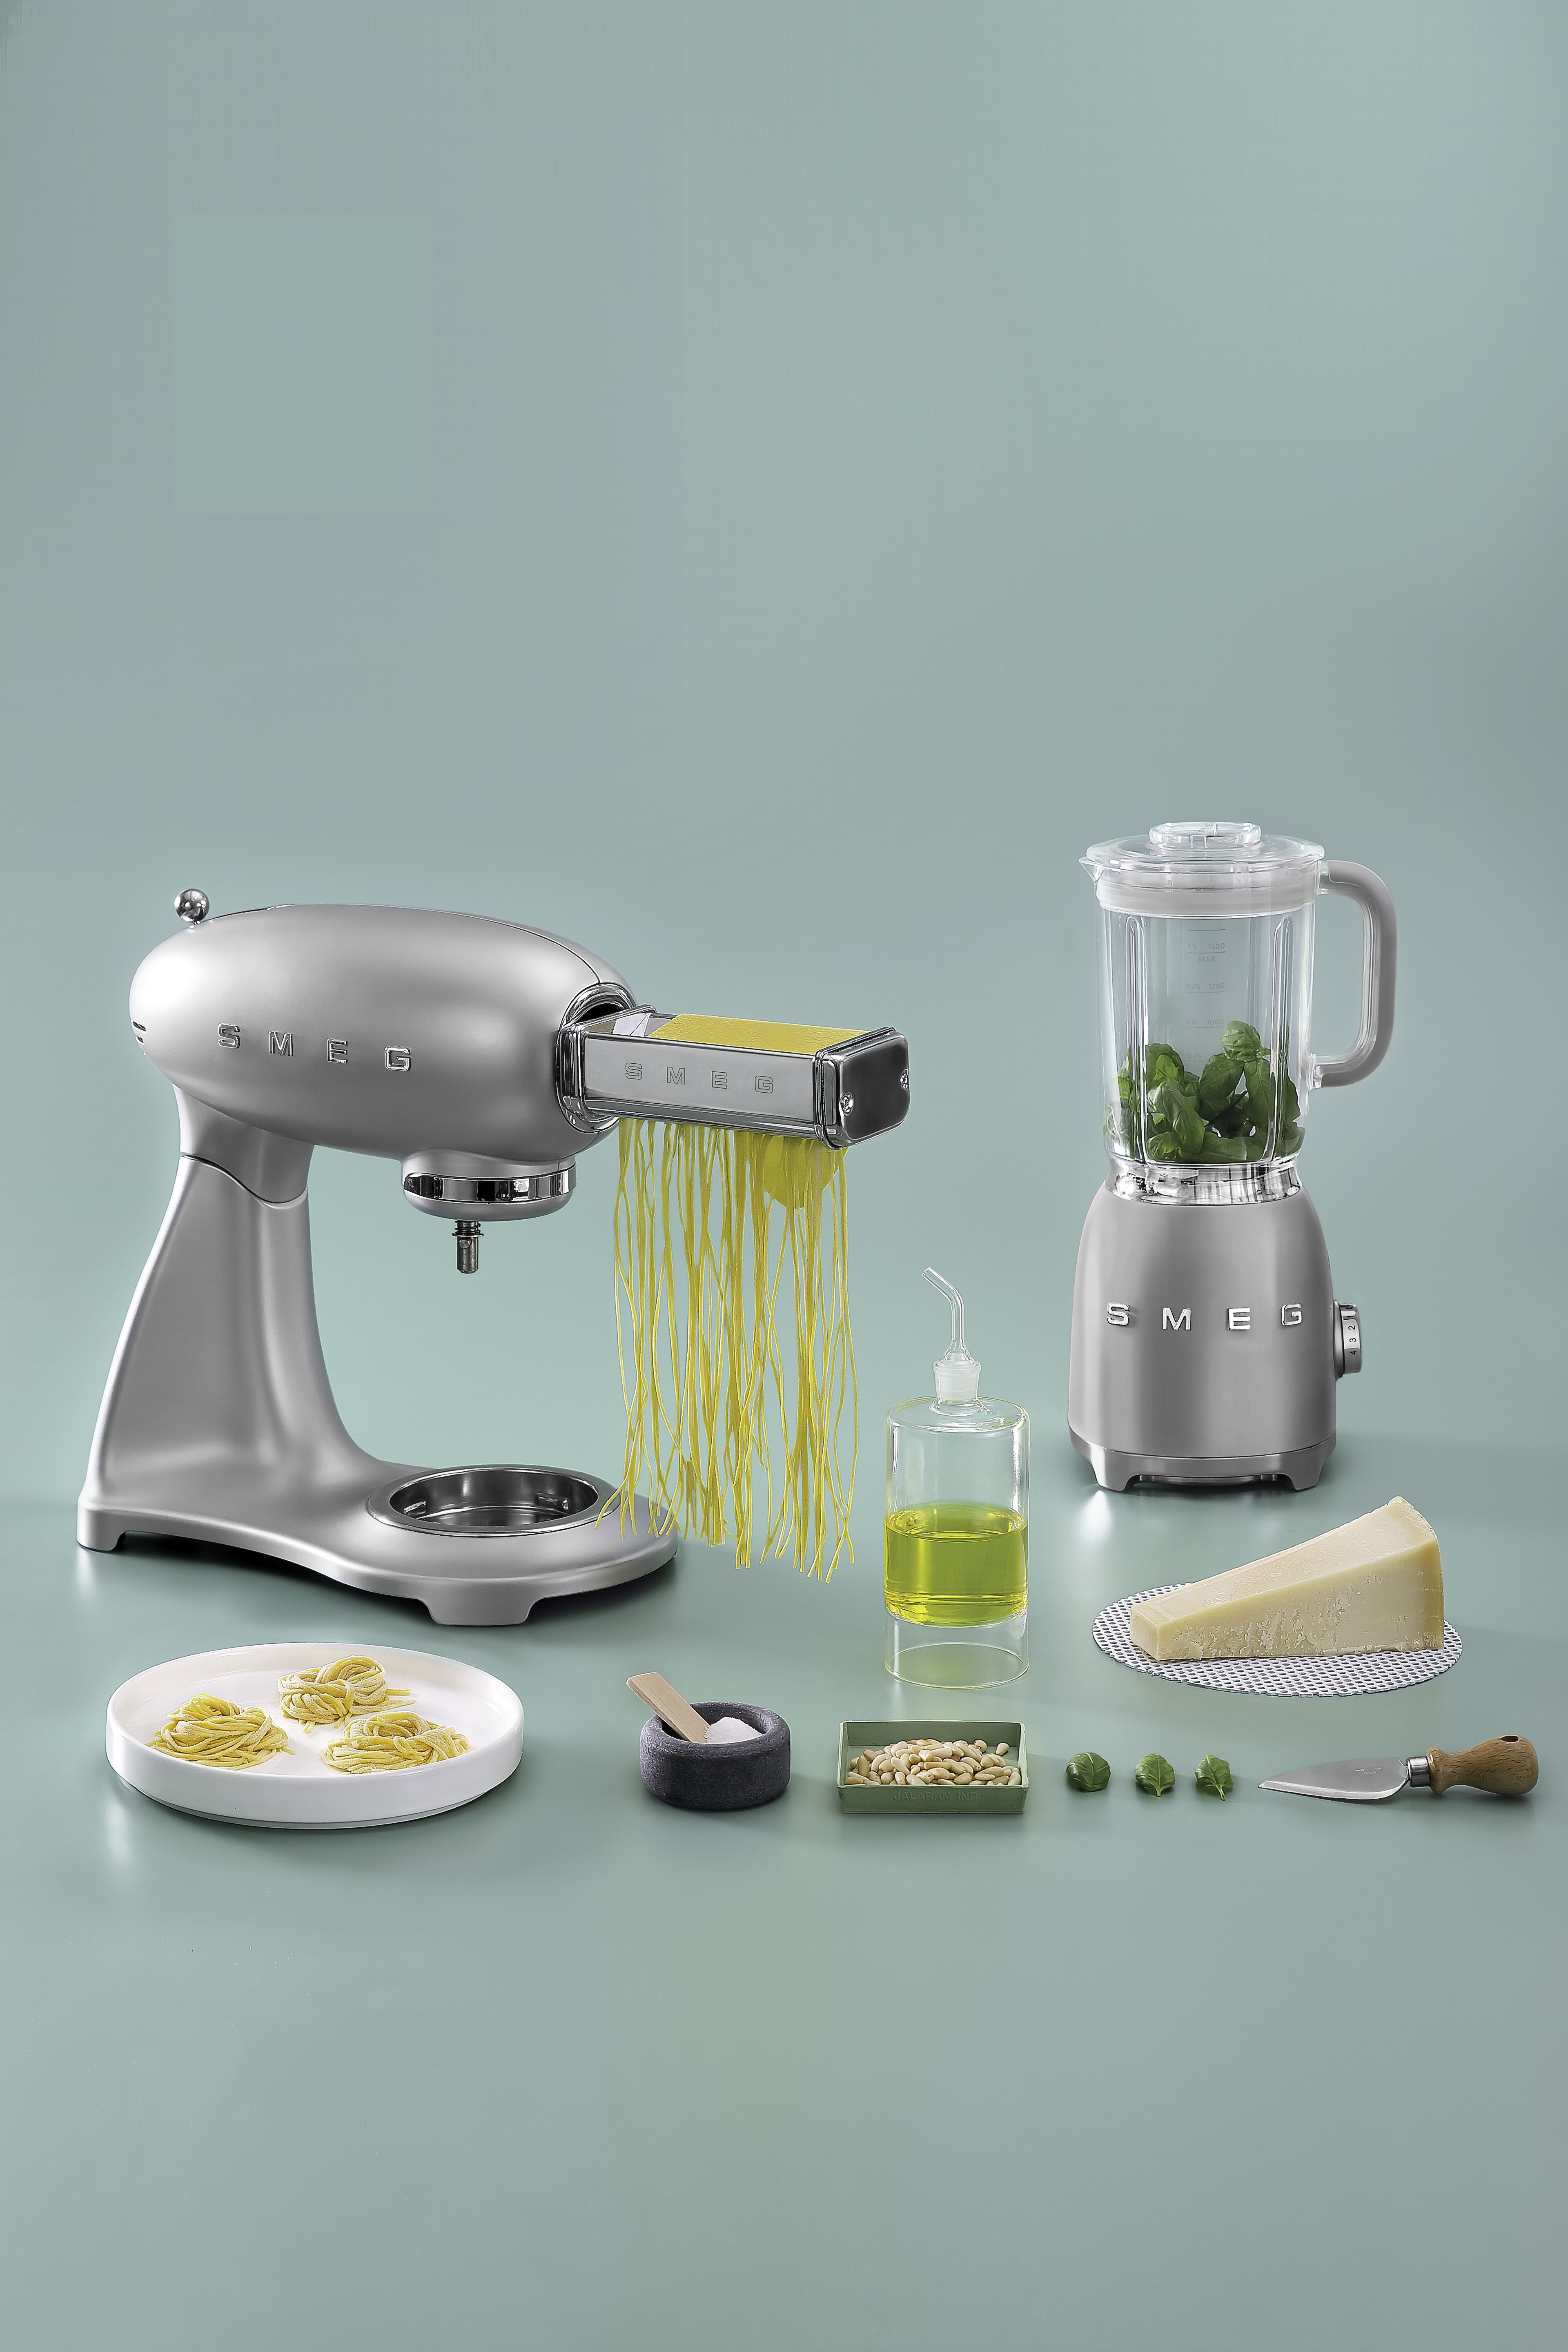 Smeg Stand Mixer with Accessories and Blender | KITCHEN | Pinterest ...